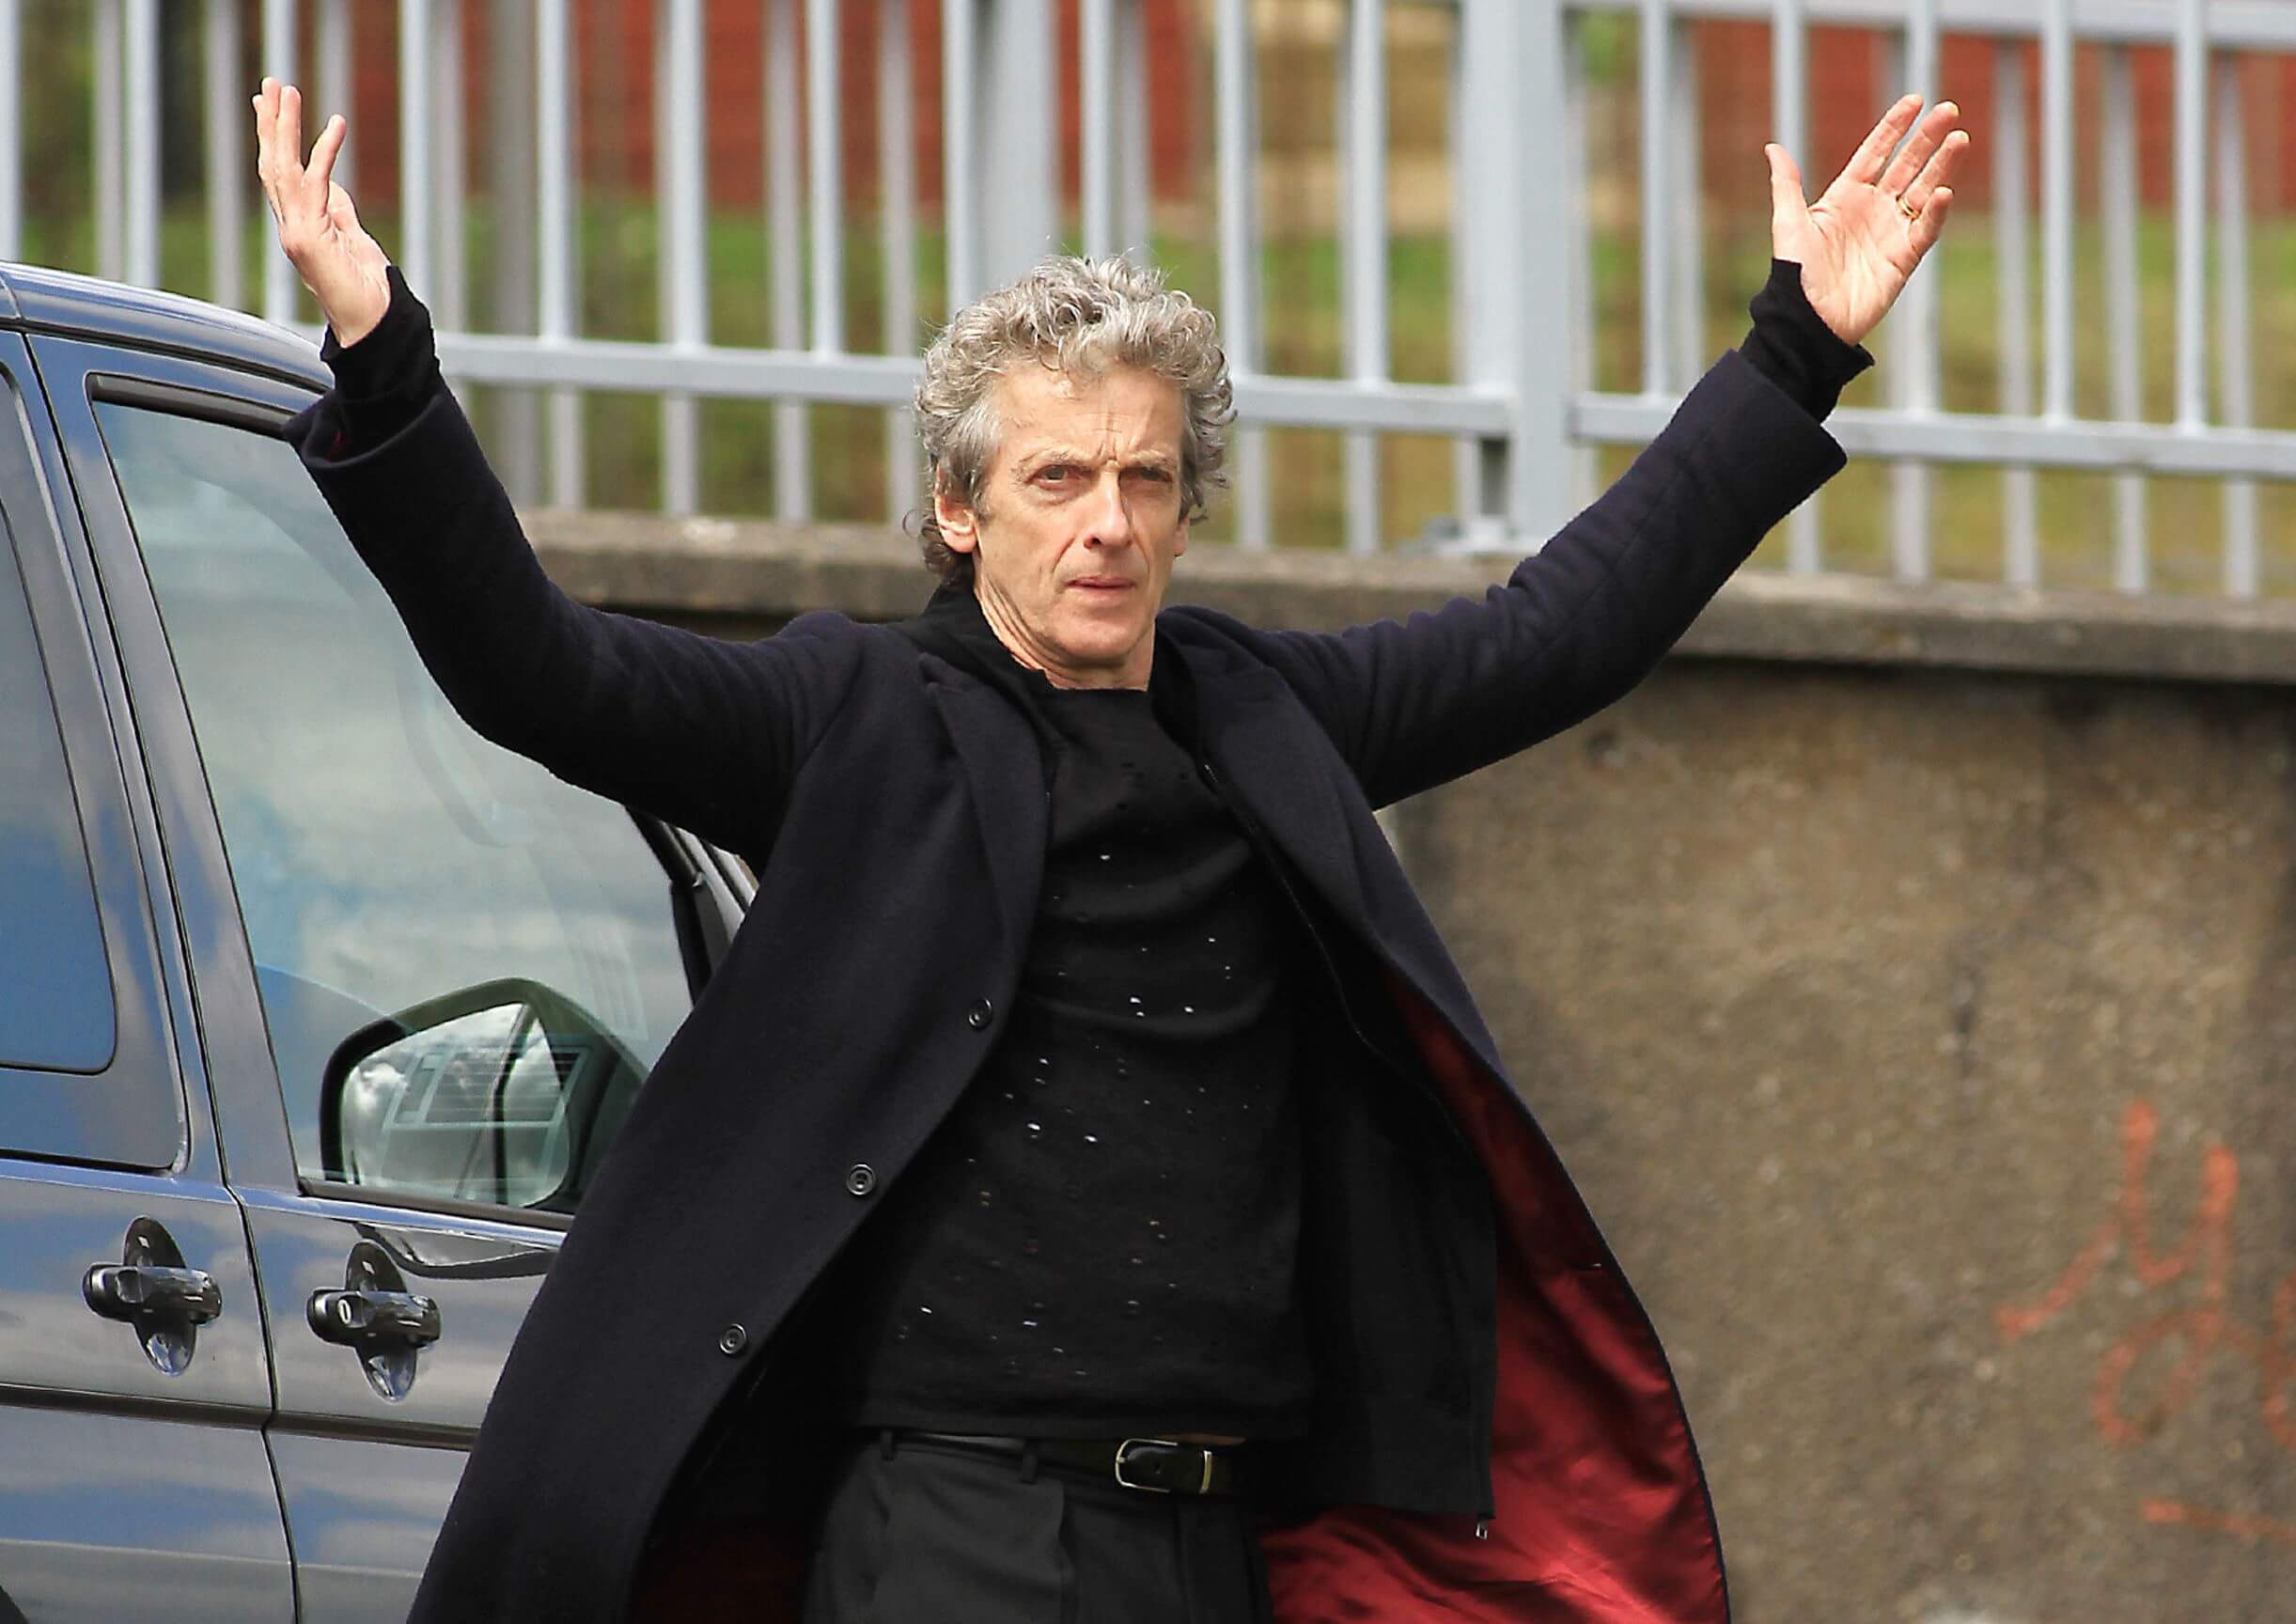 12th-doctor-arms-raised